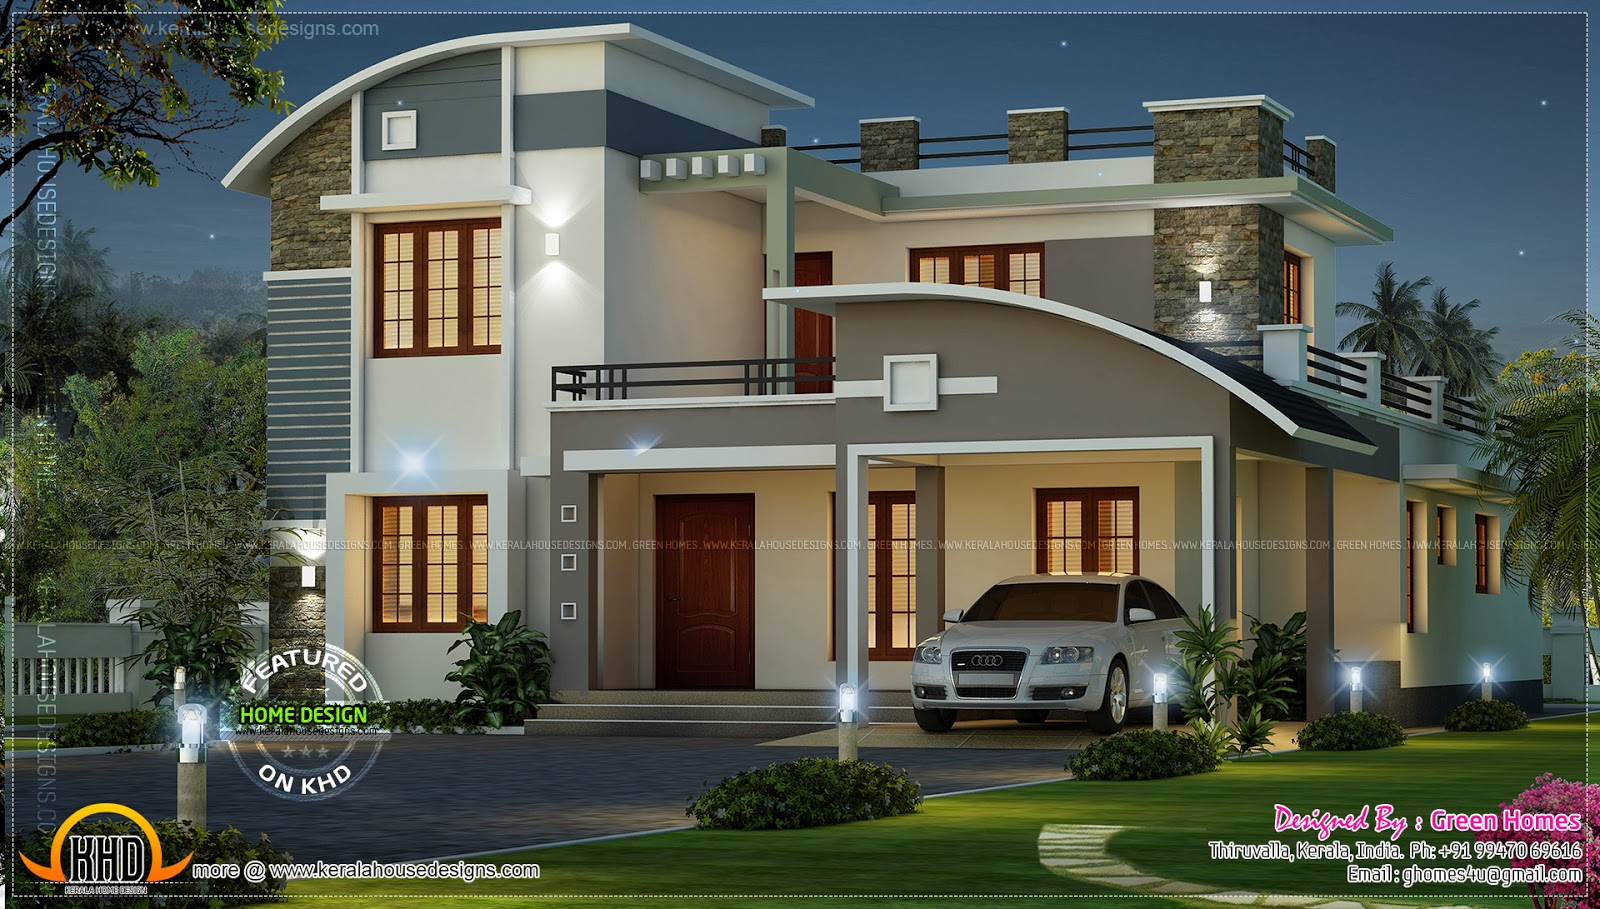 Modern beautiful home - Kerala home design and floor plans